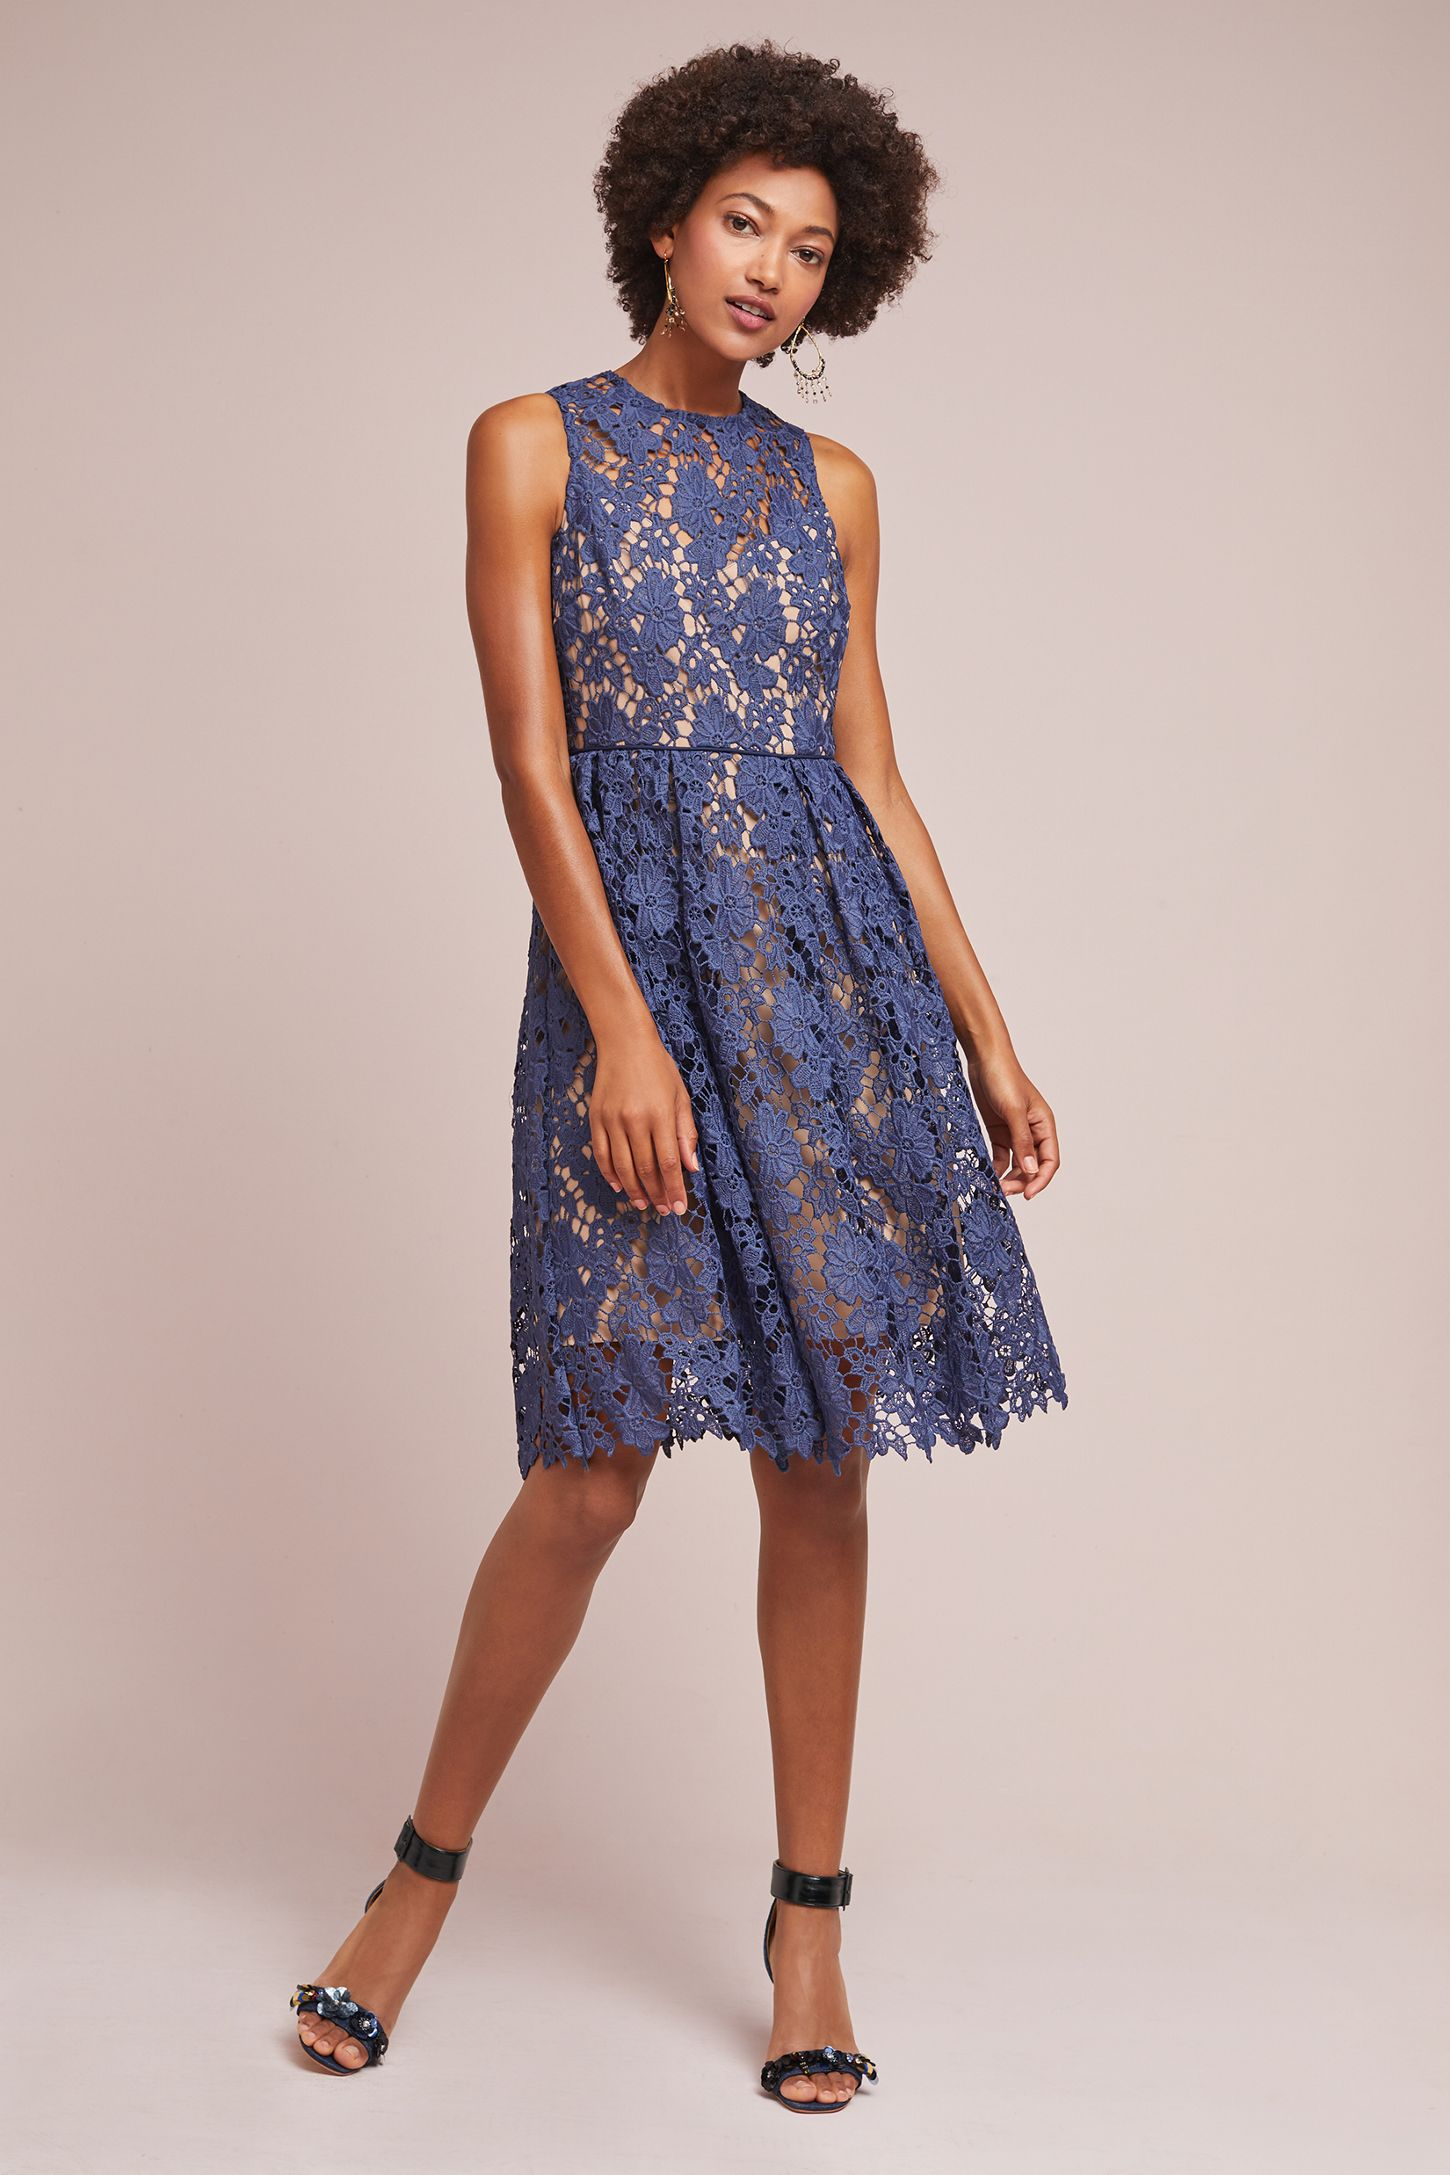 cbba15ce18a2 High-Neck Lace Dress   Anthropologie